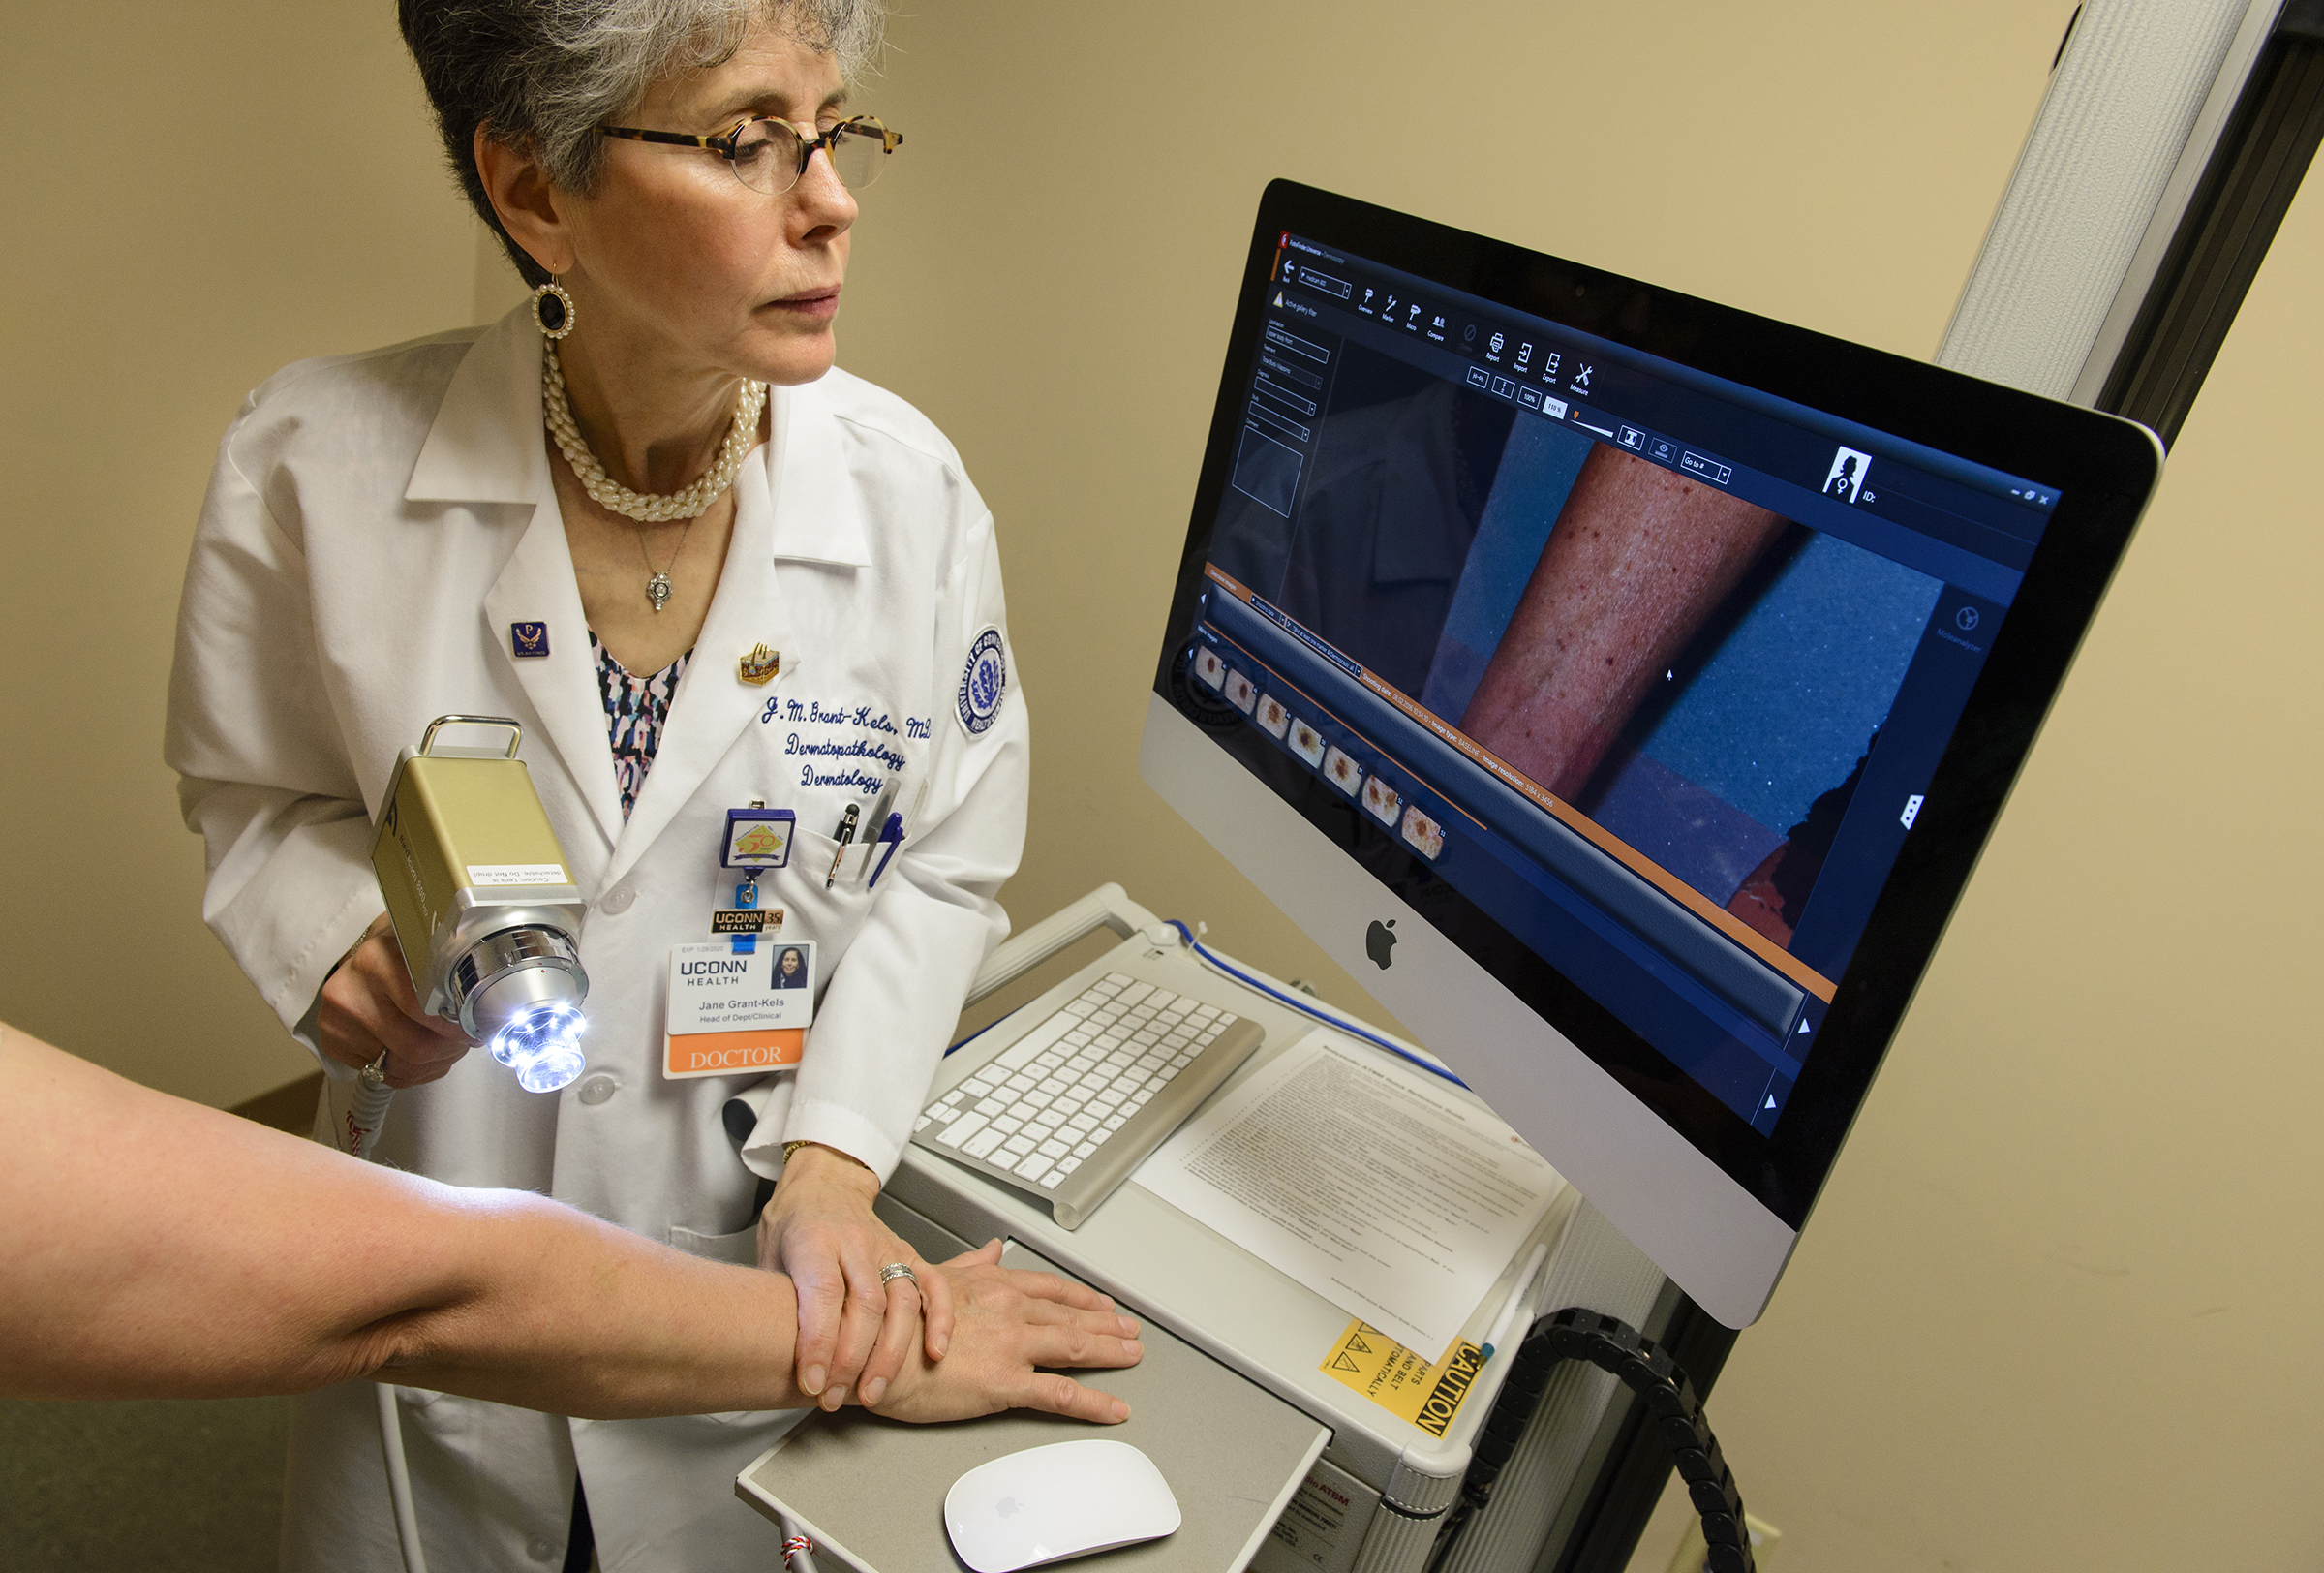 The latest advanced smart technology at UConn Health hunts for skin cancer and keeps an eye on changing moles. Dr. Jane Grant-Kels (shown here) says, 'This technology is going to help us save more lives from skin cancer and melanoma.' (Janine Gelineau/UConn Health Photo)